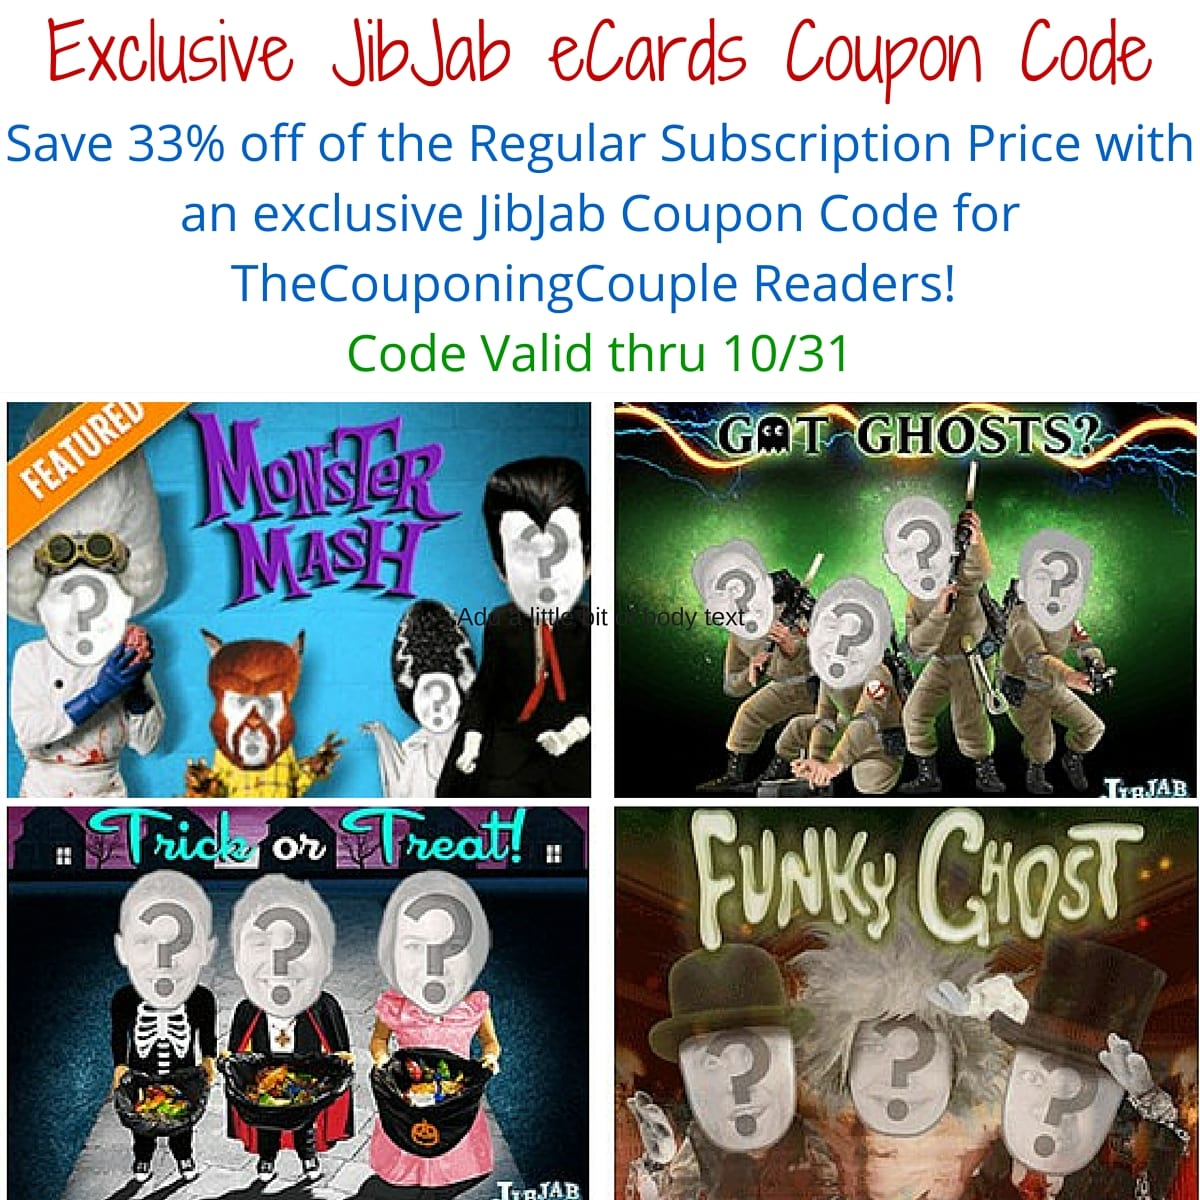 """You can find them by searching """" Exclusive JibJab eCards Coupon Code ~ Halloween JibJab Videos!"""